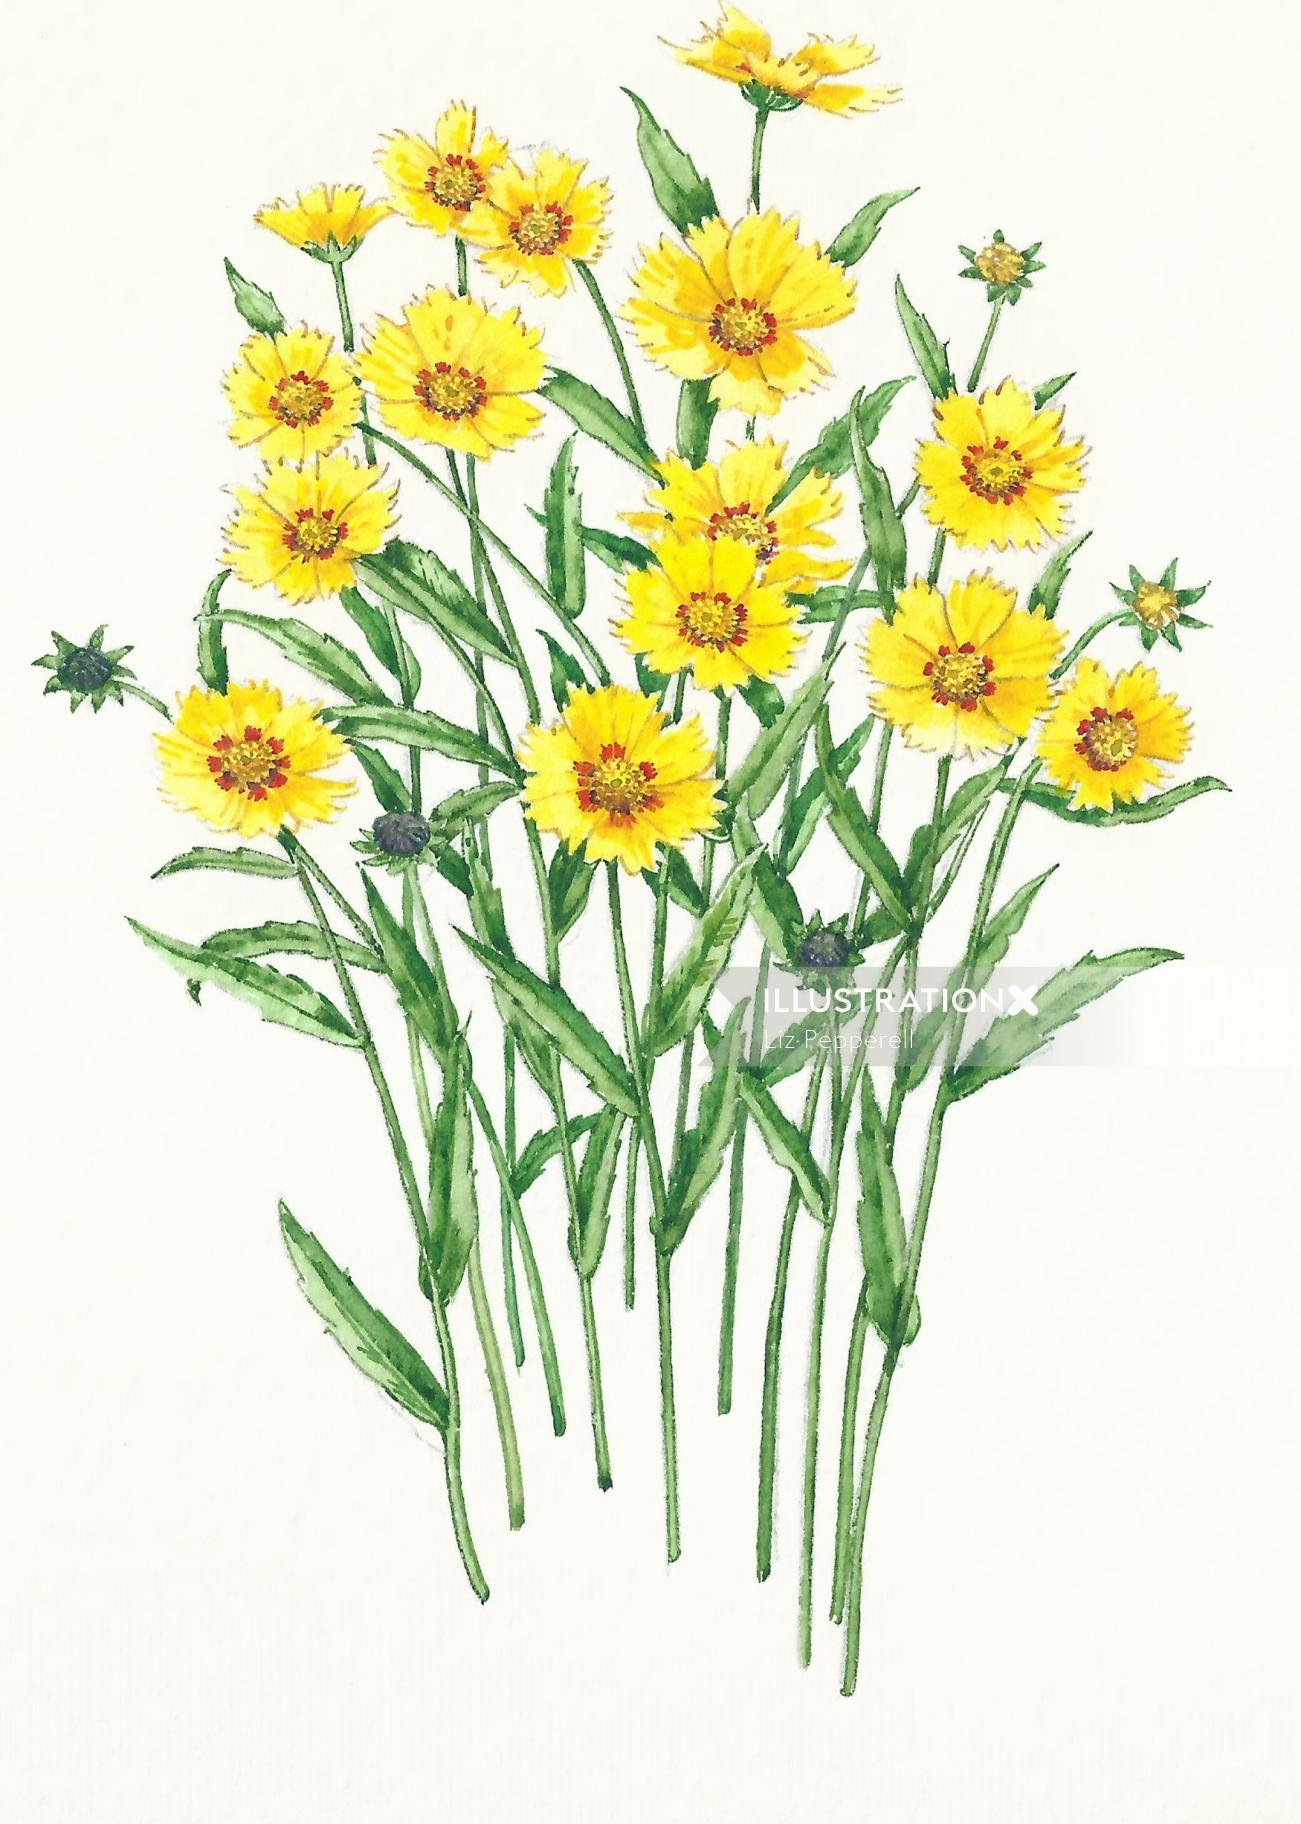 Watercolor art of coreopteris